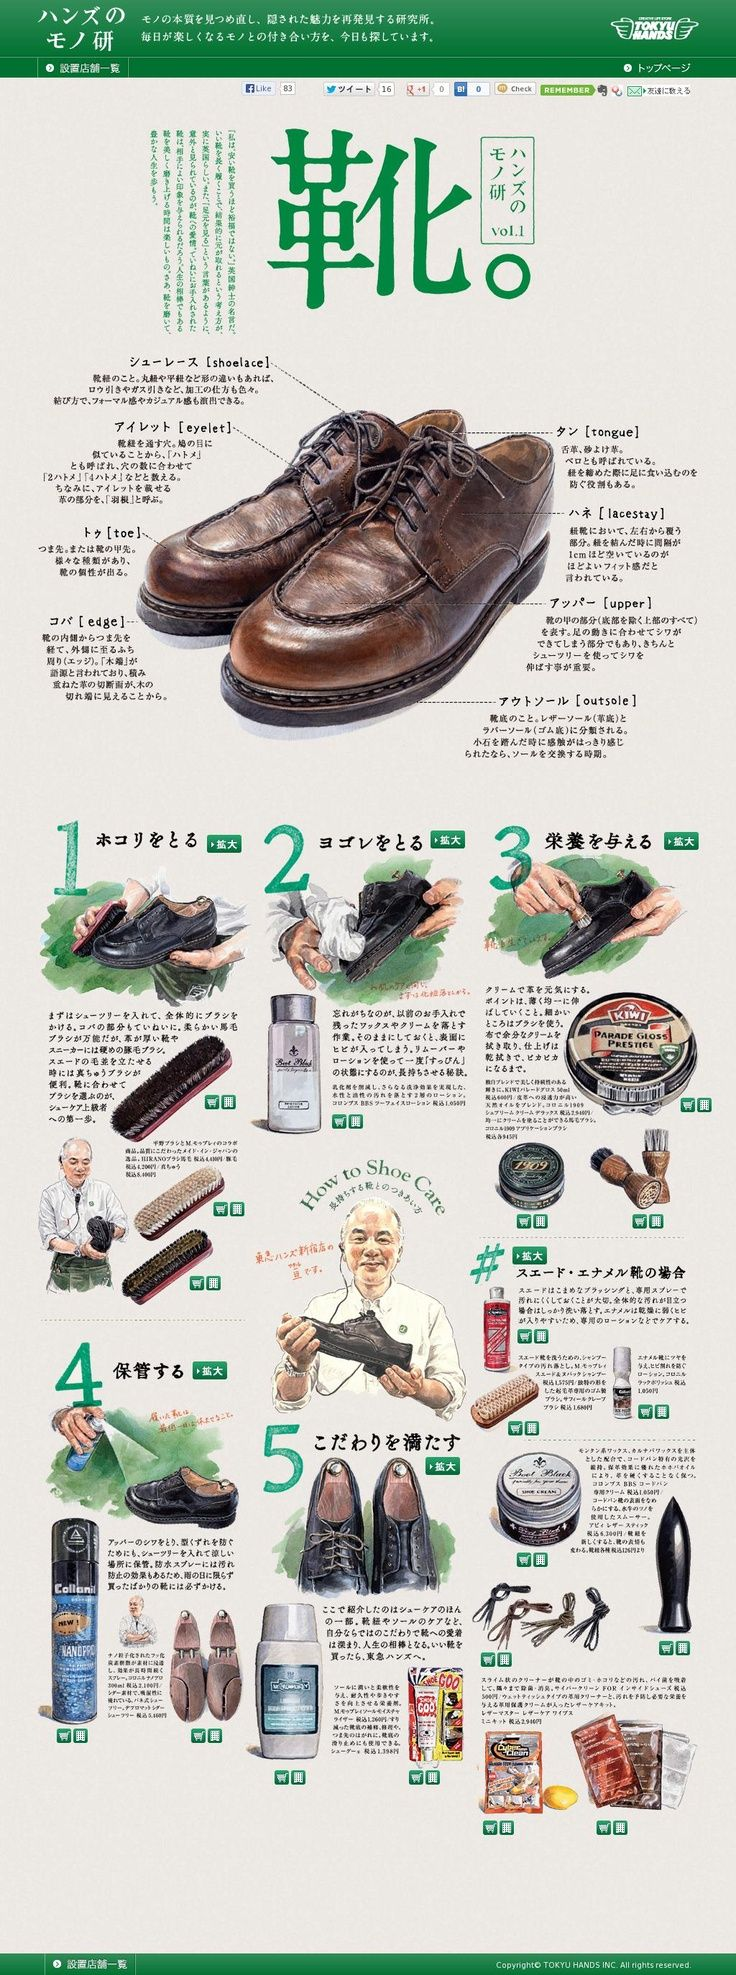 写真でいいので、こういう雑誌風の特集もしたいですね。 The website 'http://www.tokyu-hands.co.jp/monoken/vol01/index.html' courtesy of @Pinstamatic (http://pinstamatic.com):